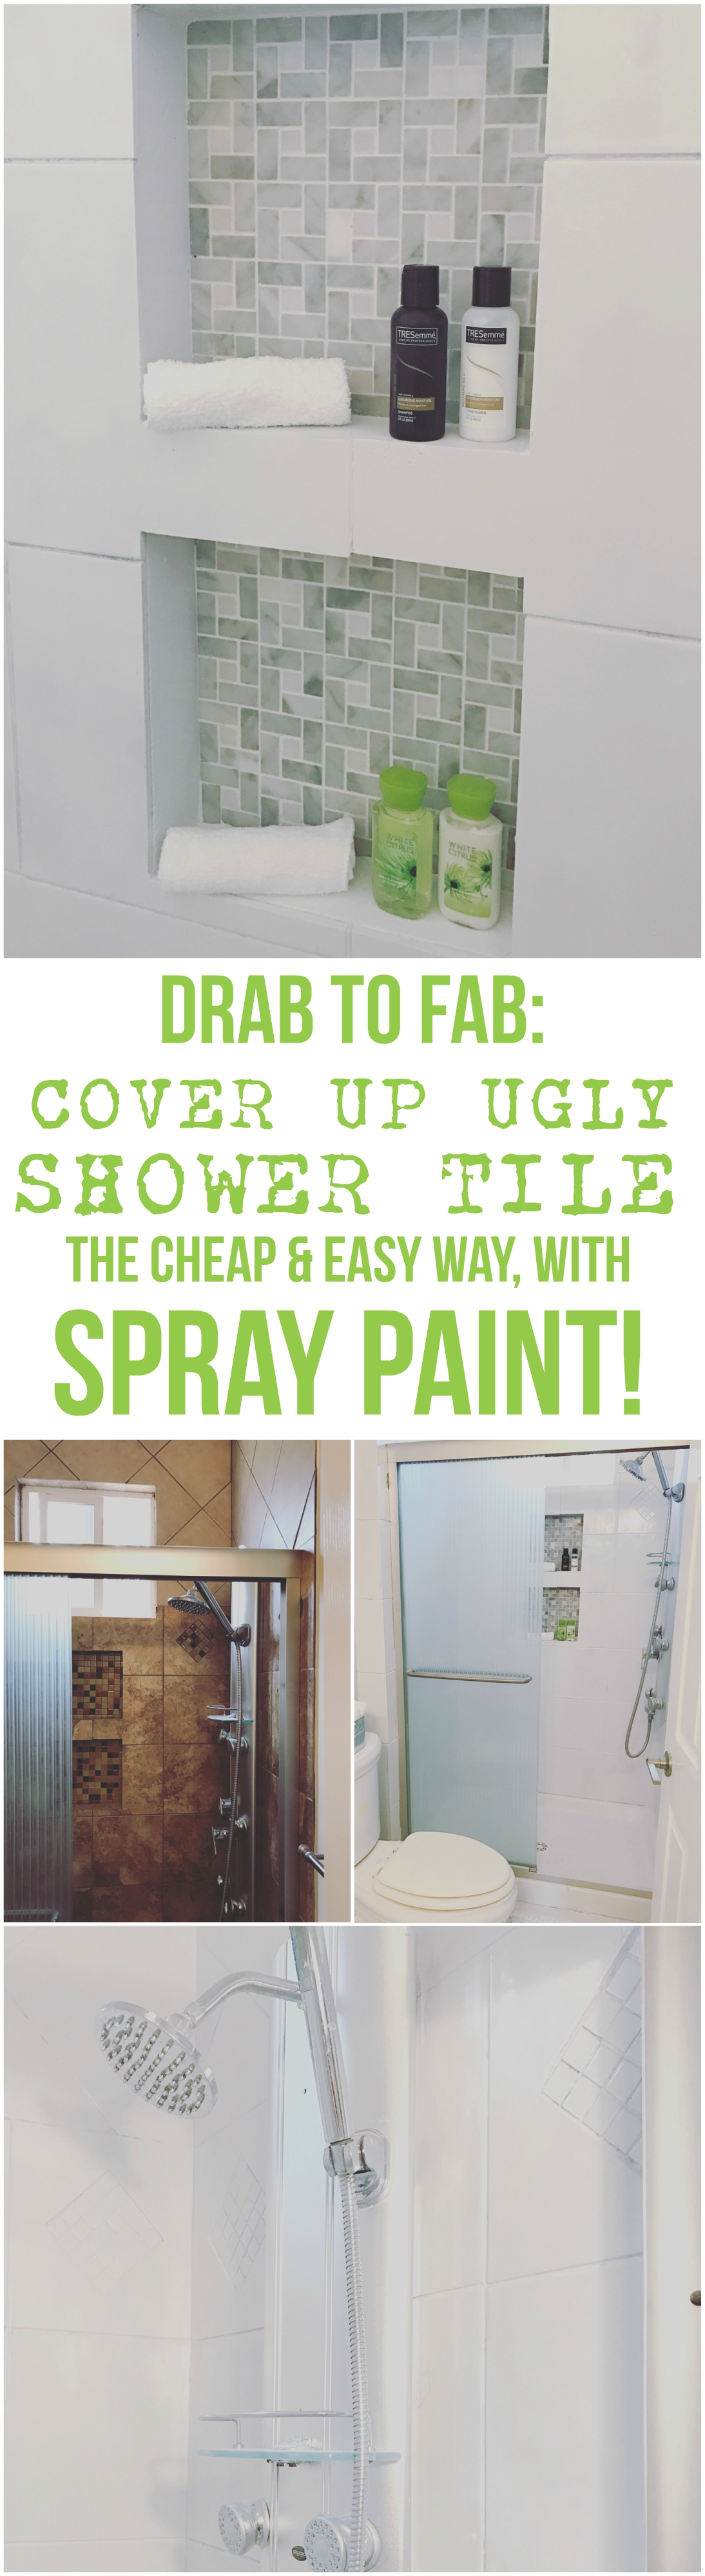 Cheap Easy Shower Makeover With Spray Paint Here S How We Used Rust Oleum Epoxy Spray Paint To Give Our Shower A Shower Tile Shower Makeover Painting Shower